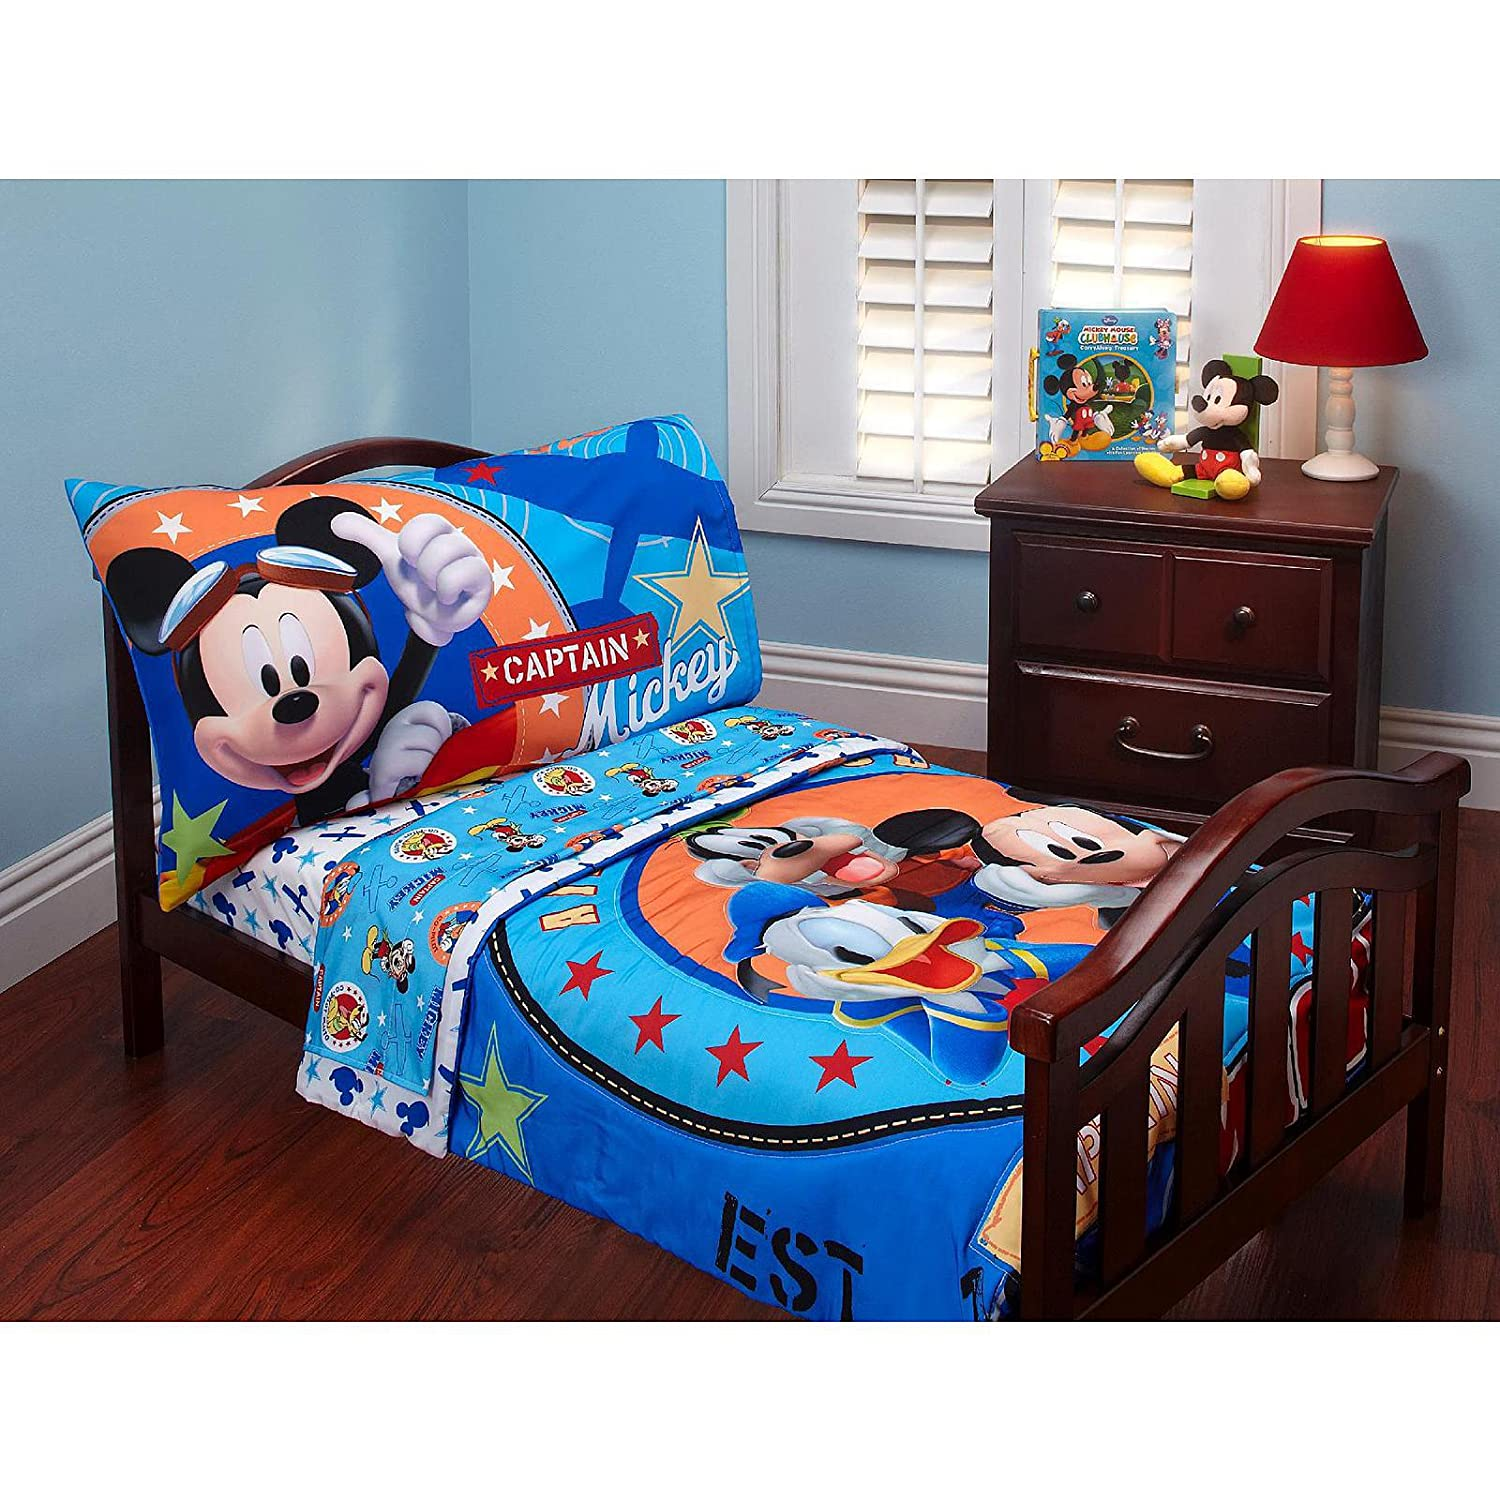 Baby Mickey Mouse Toddler Bed Set Comforter Top Sheet Fitted Sheet Pillow Case 4 Piece Kids Bedding Set 1a2